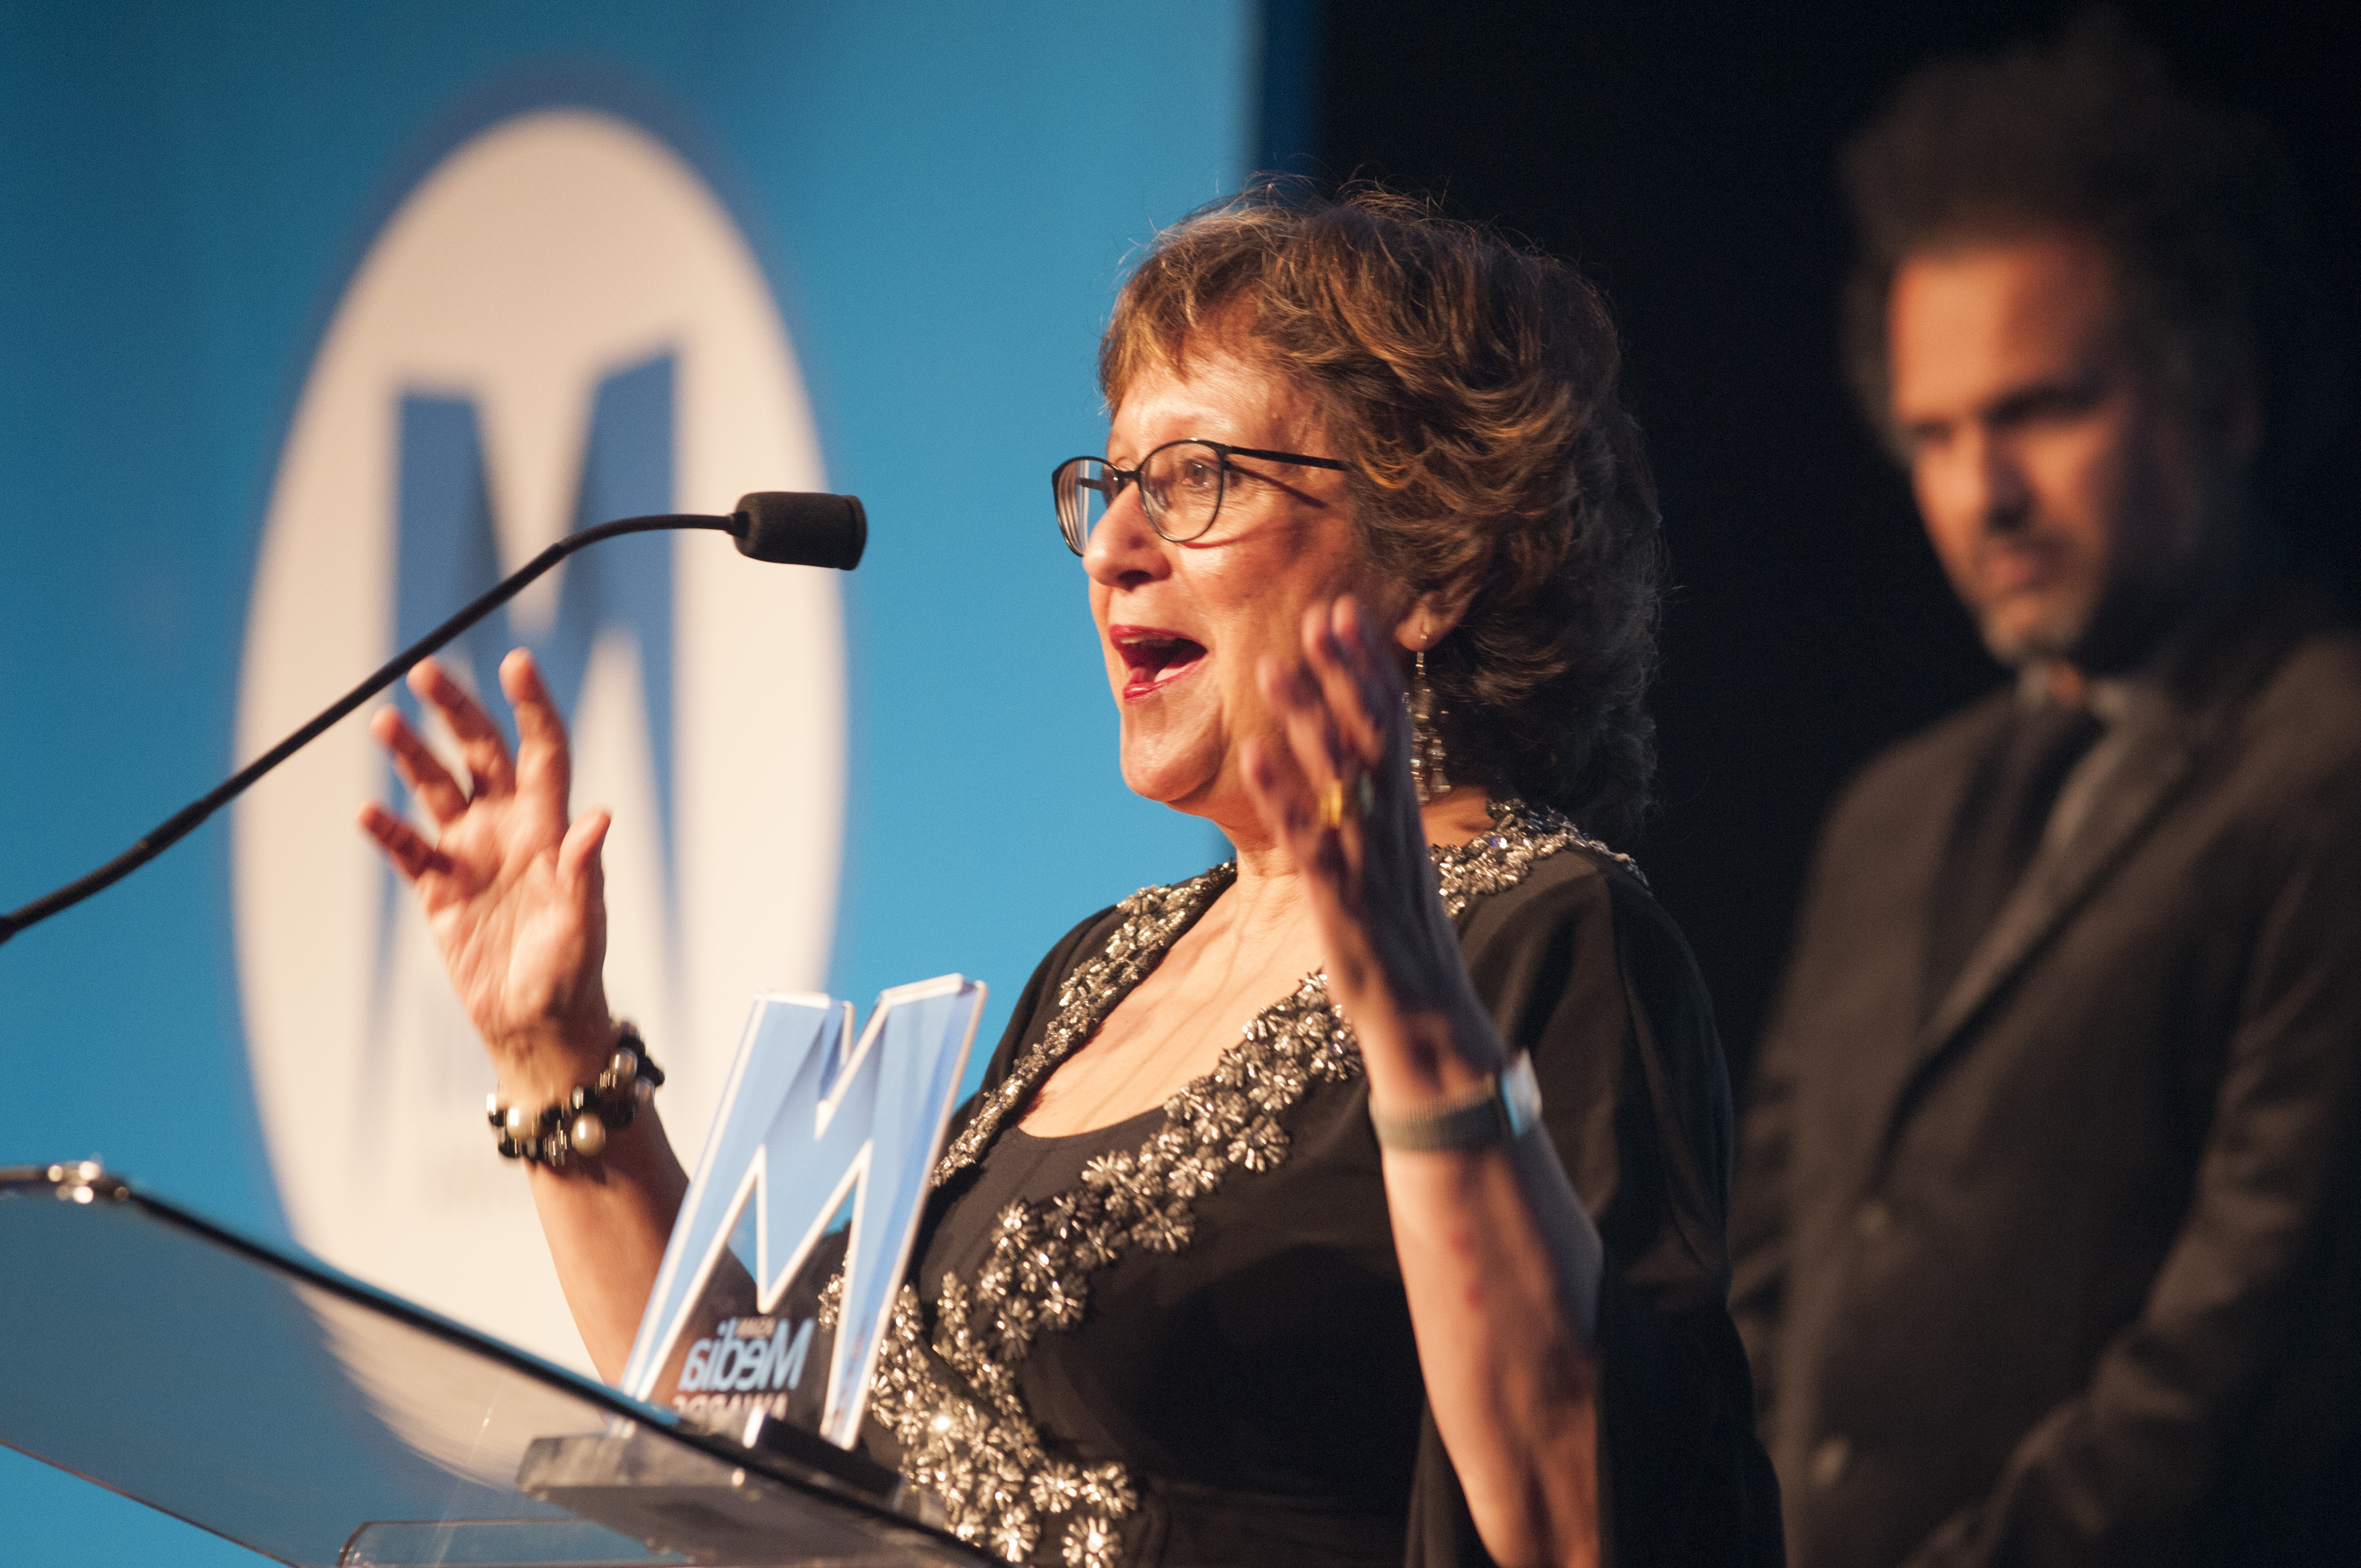 Yasmin Alibhai-Brown presented with Outstanding Contribution to Media Award 2017